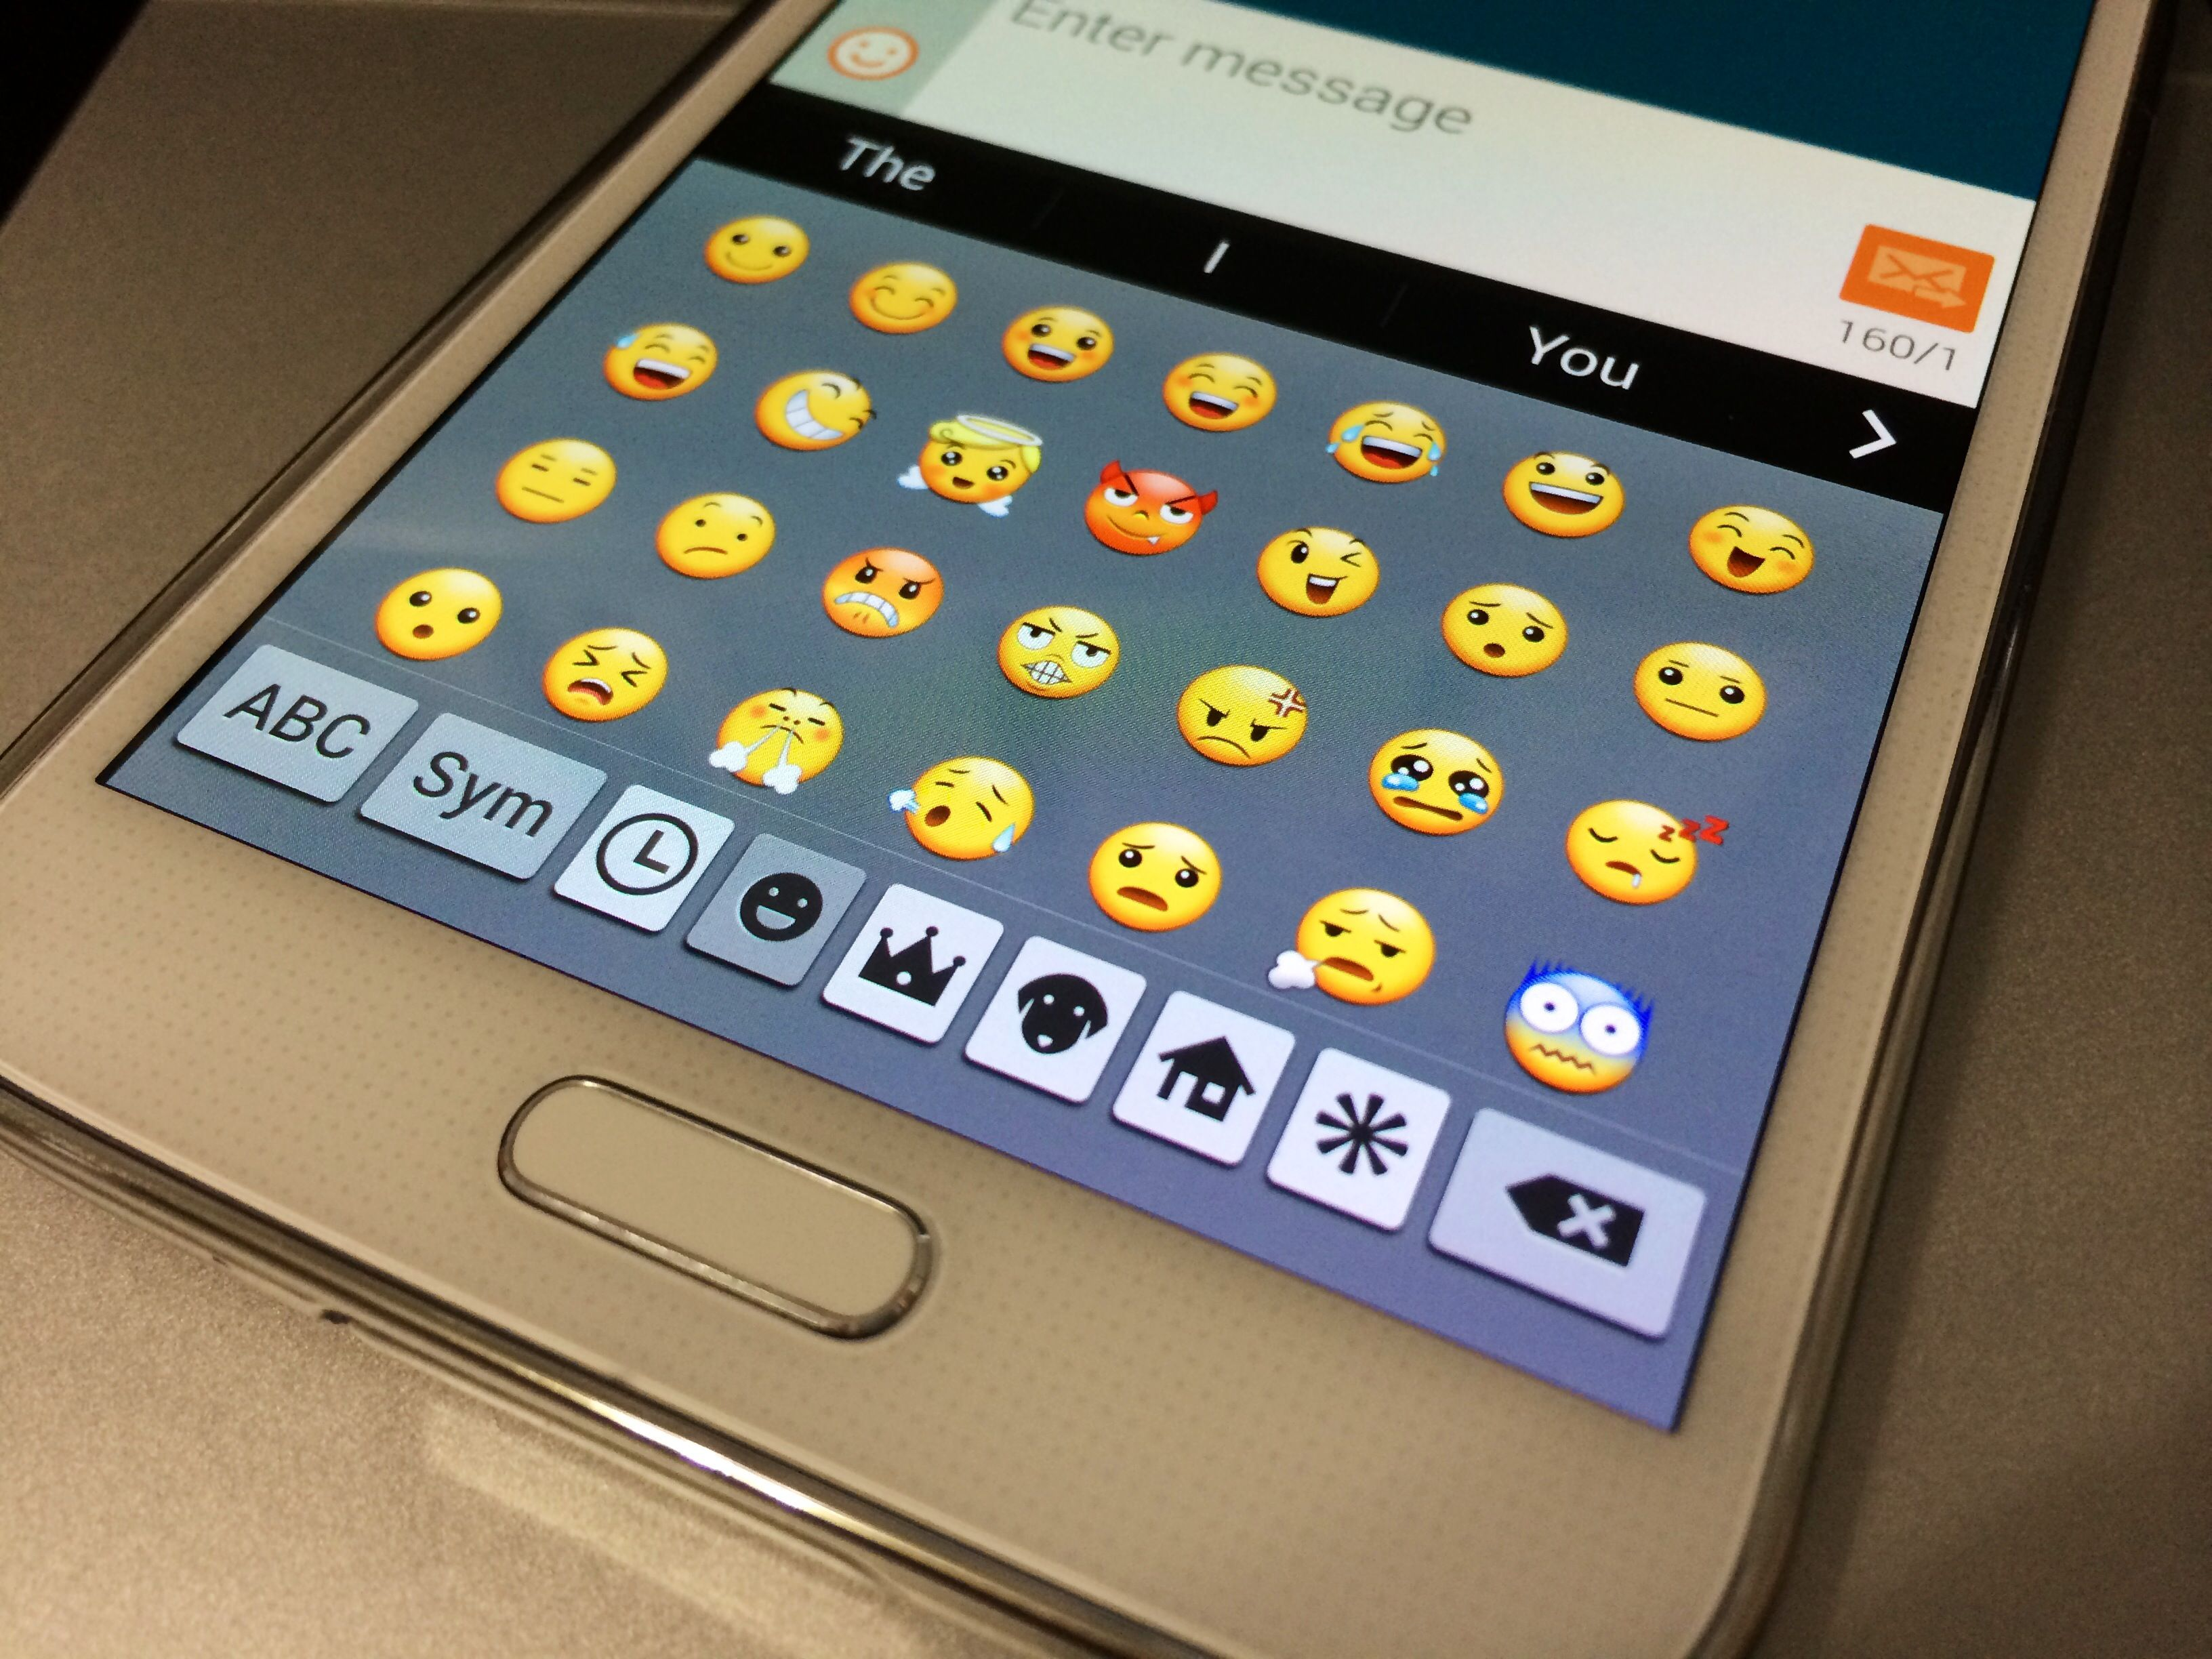 How To Use Emoji On The Galaxy S5 Galaxy Note 3 Galaxy S4 Galaxy S5 Galaxy Note 3 Samsung Galaxy S5